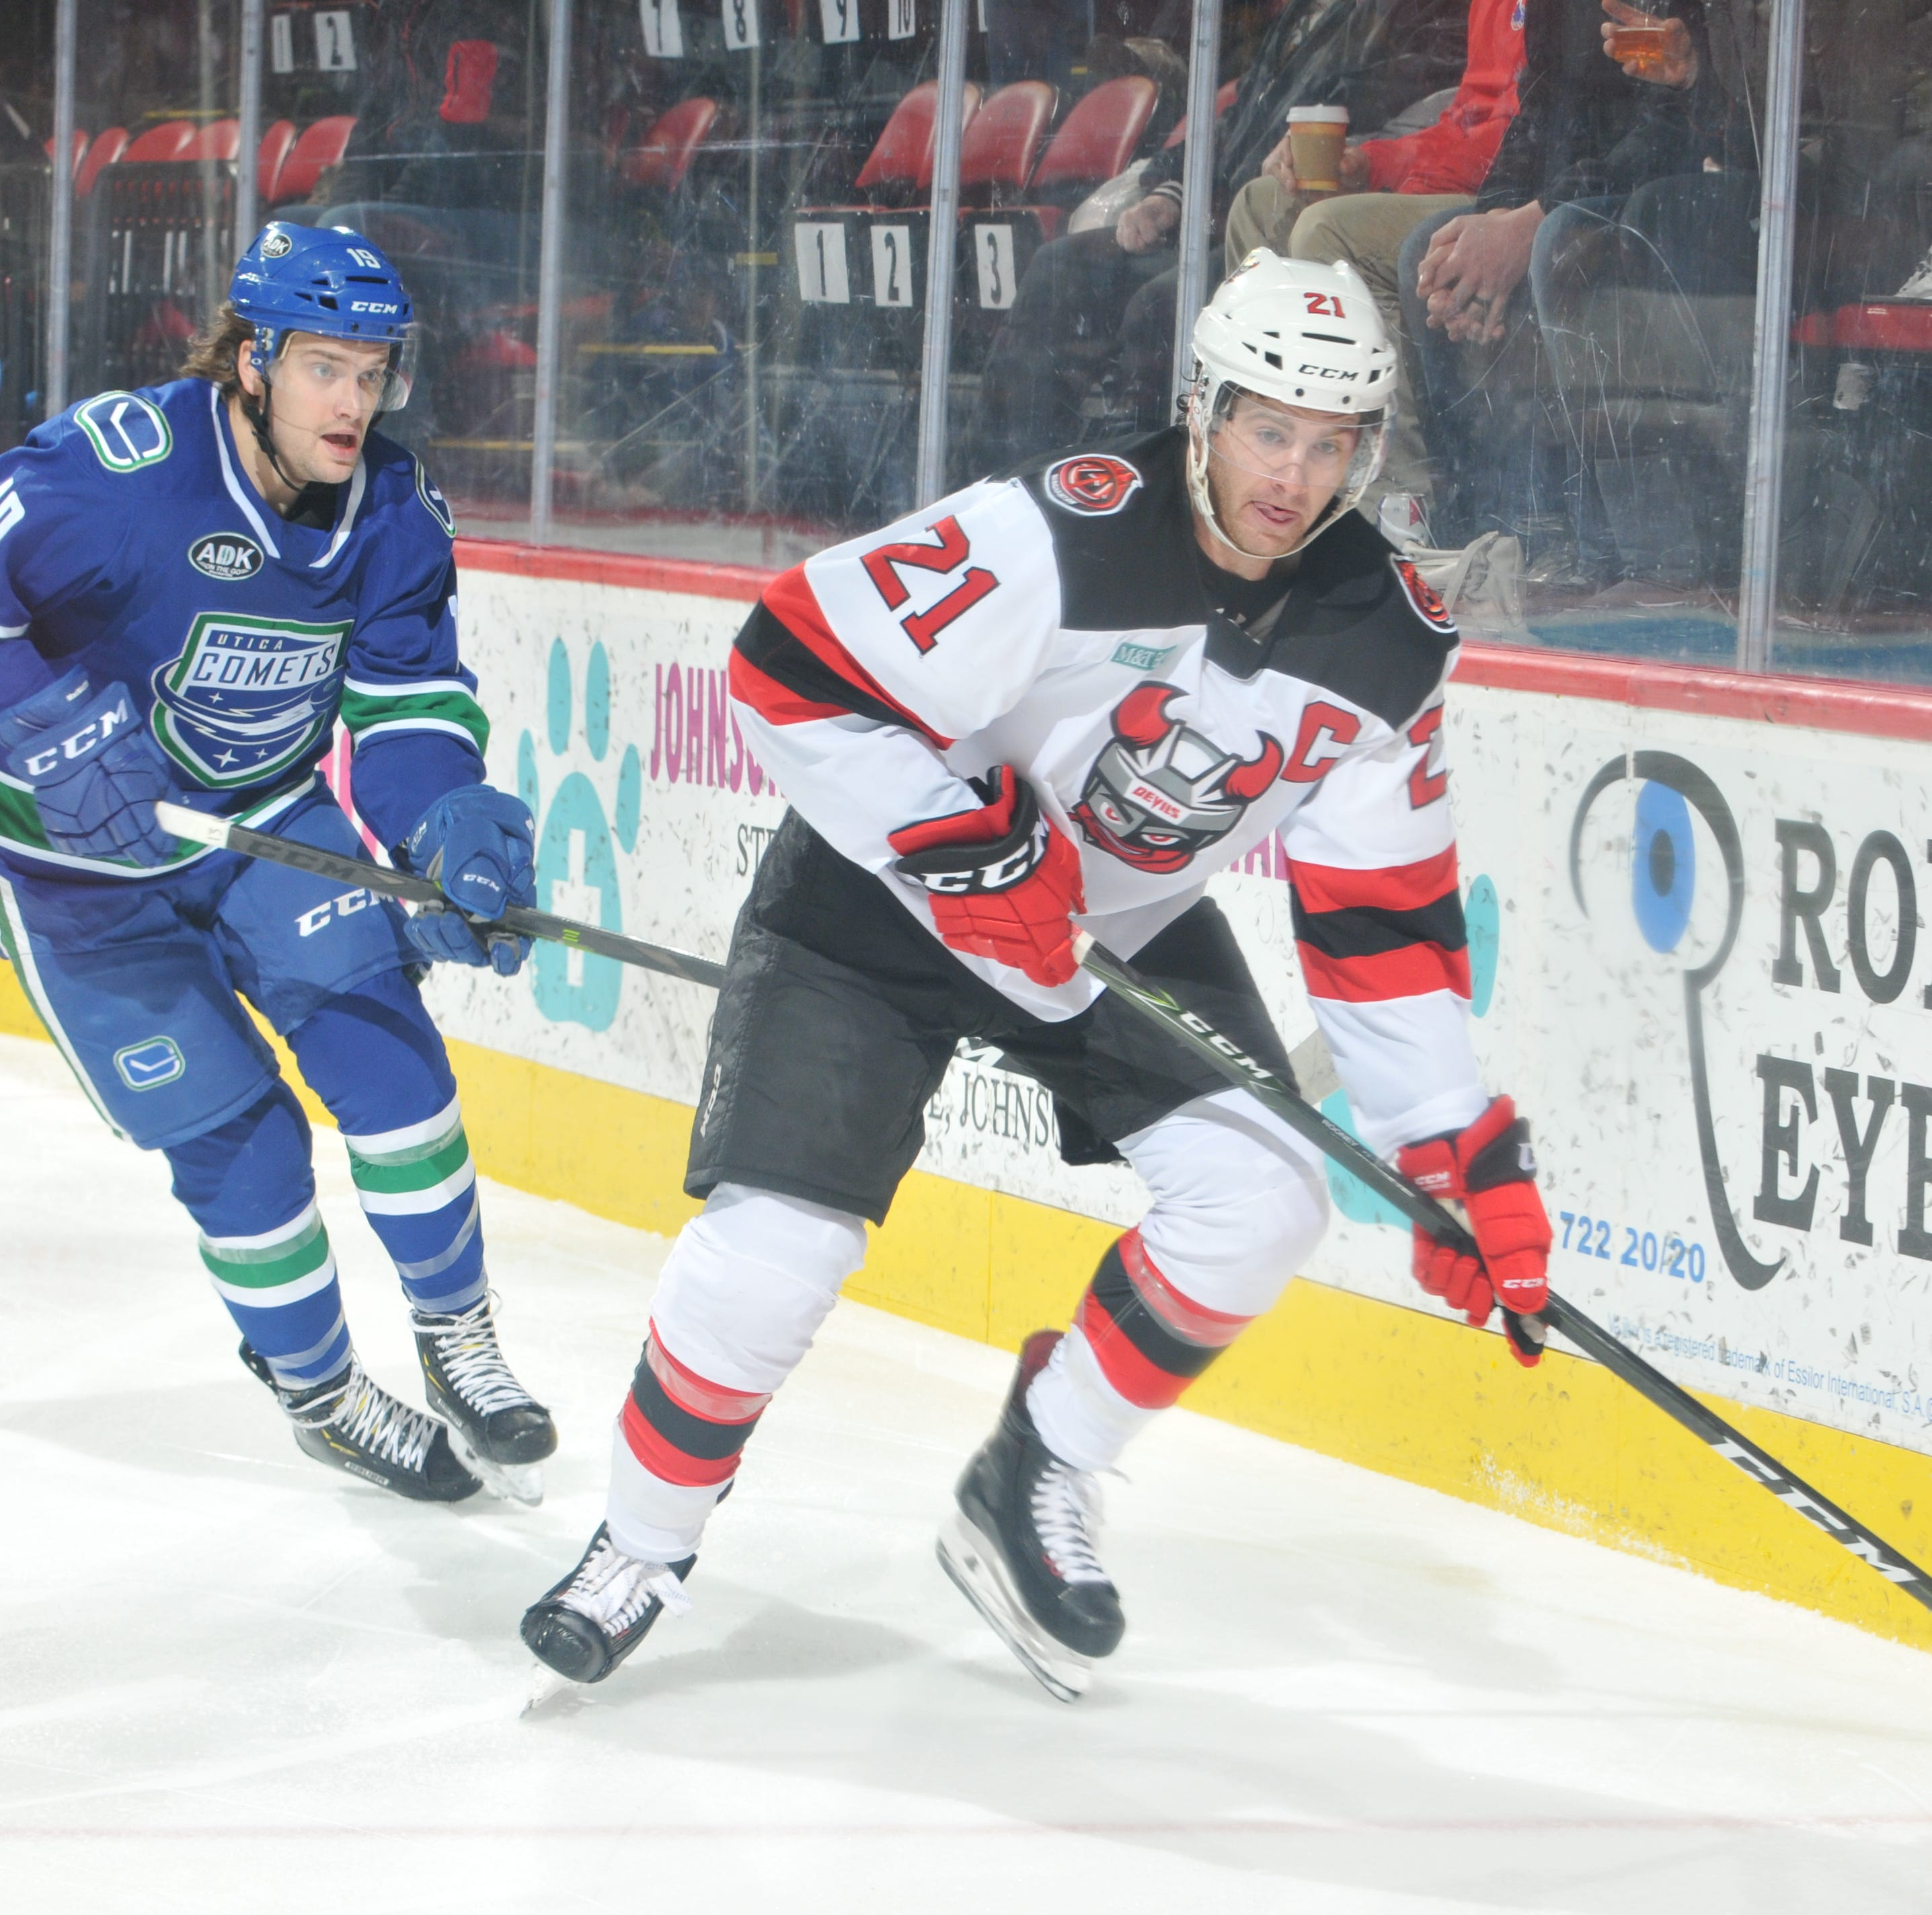 B-Devils fall at home to Utica